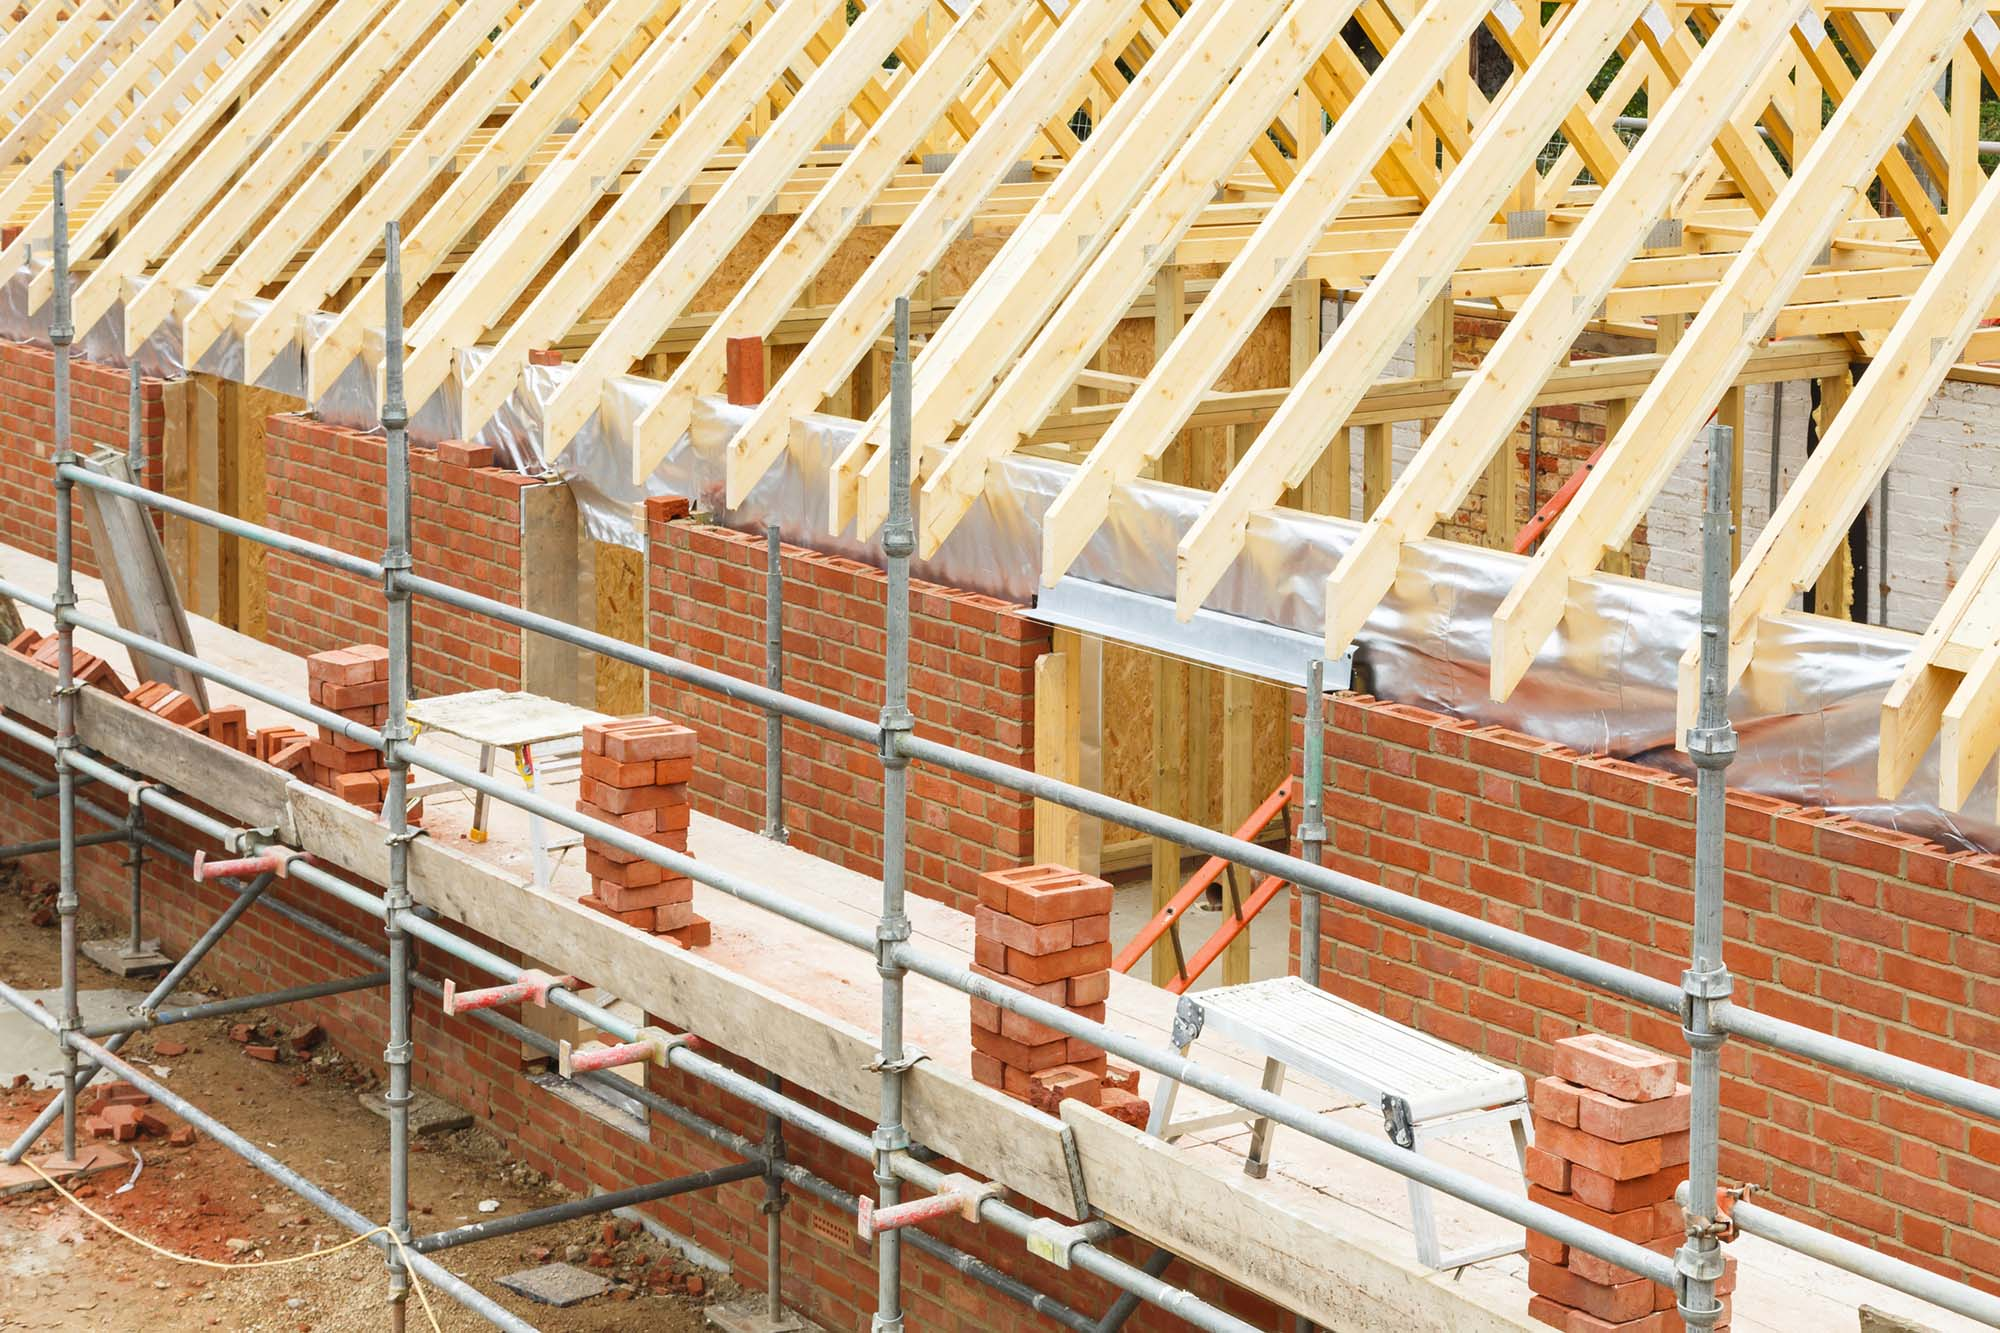 Houseing in the process of being built with brick and wood roofing